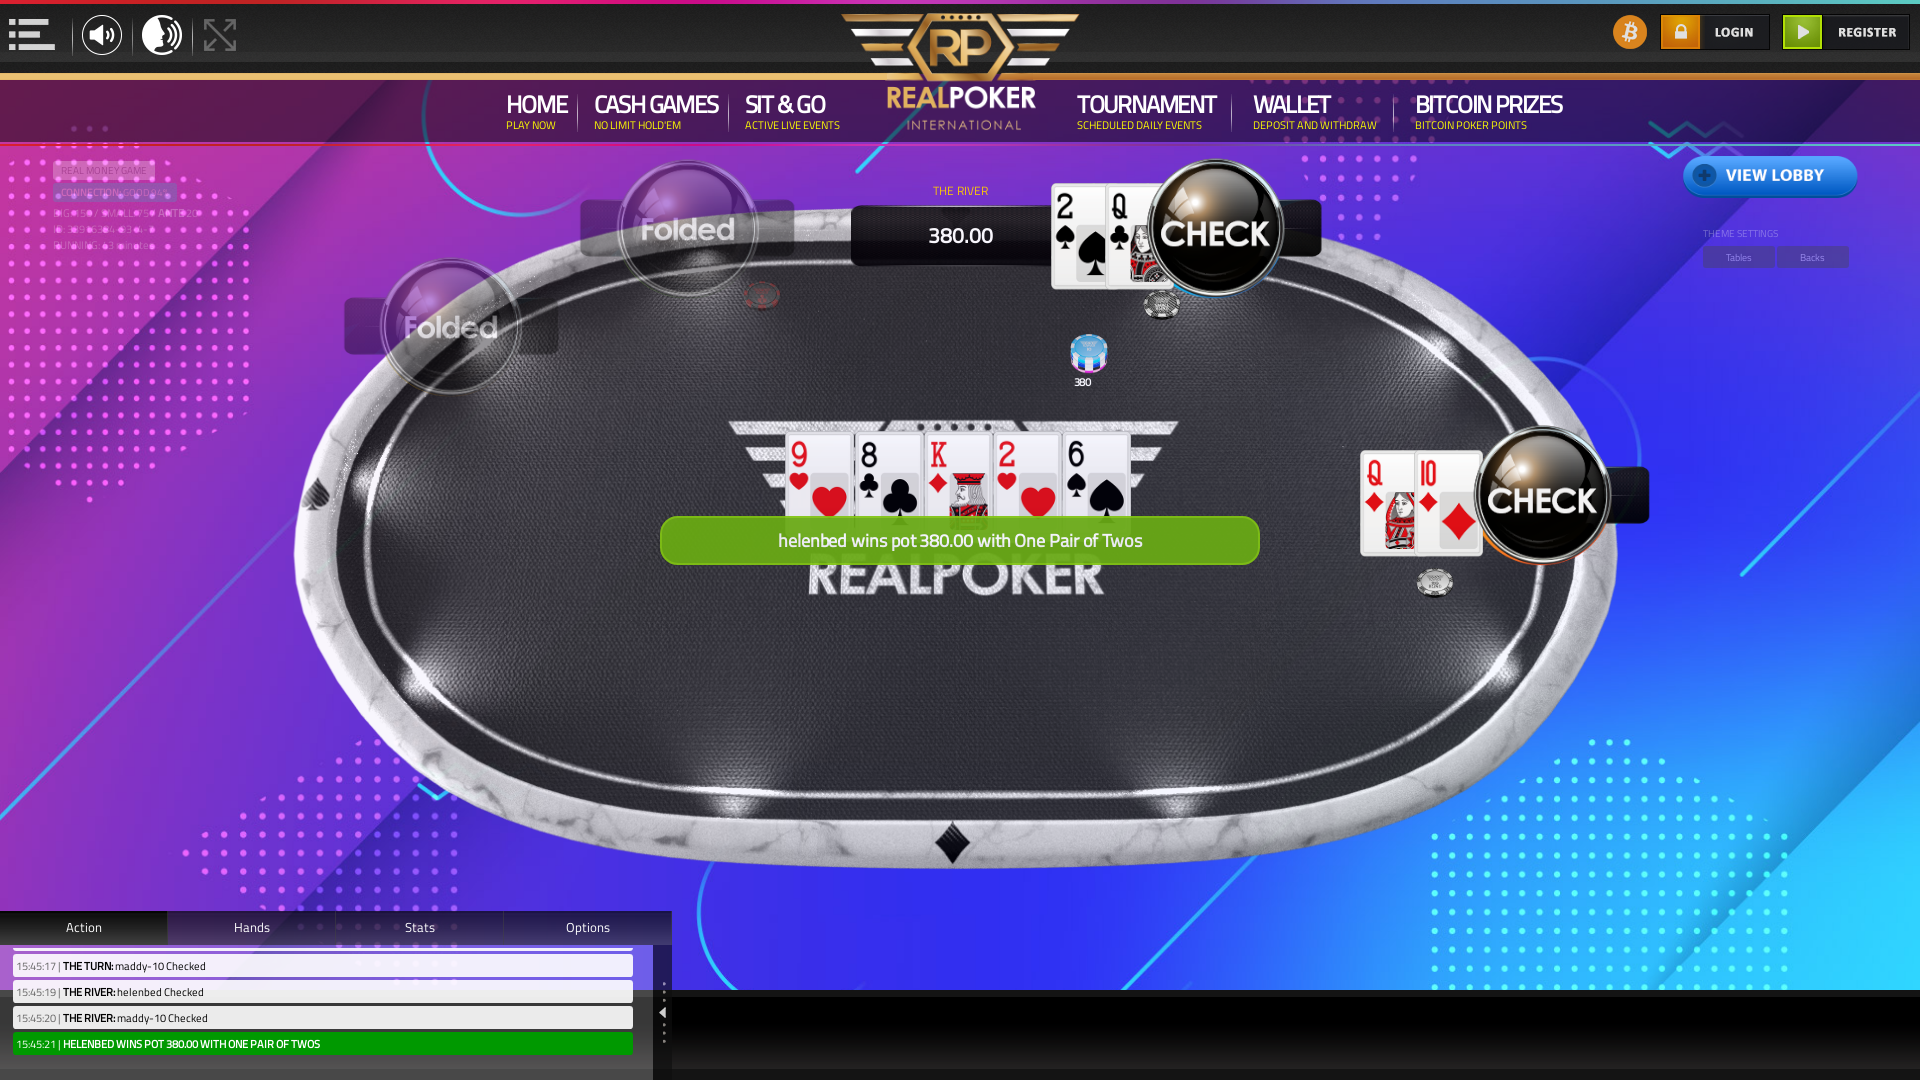 online poker on a 10 player table in the 43rd minute match up